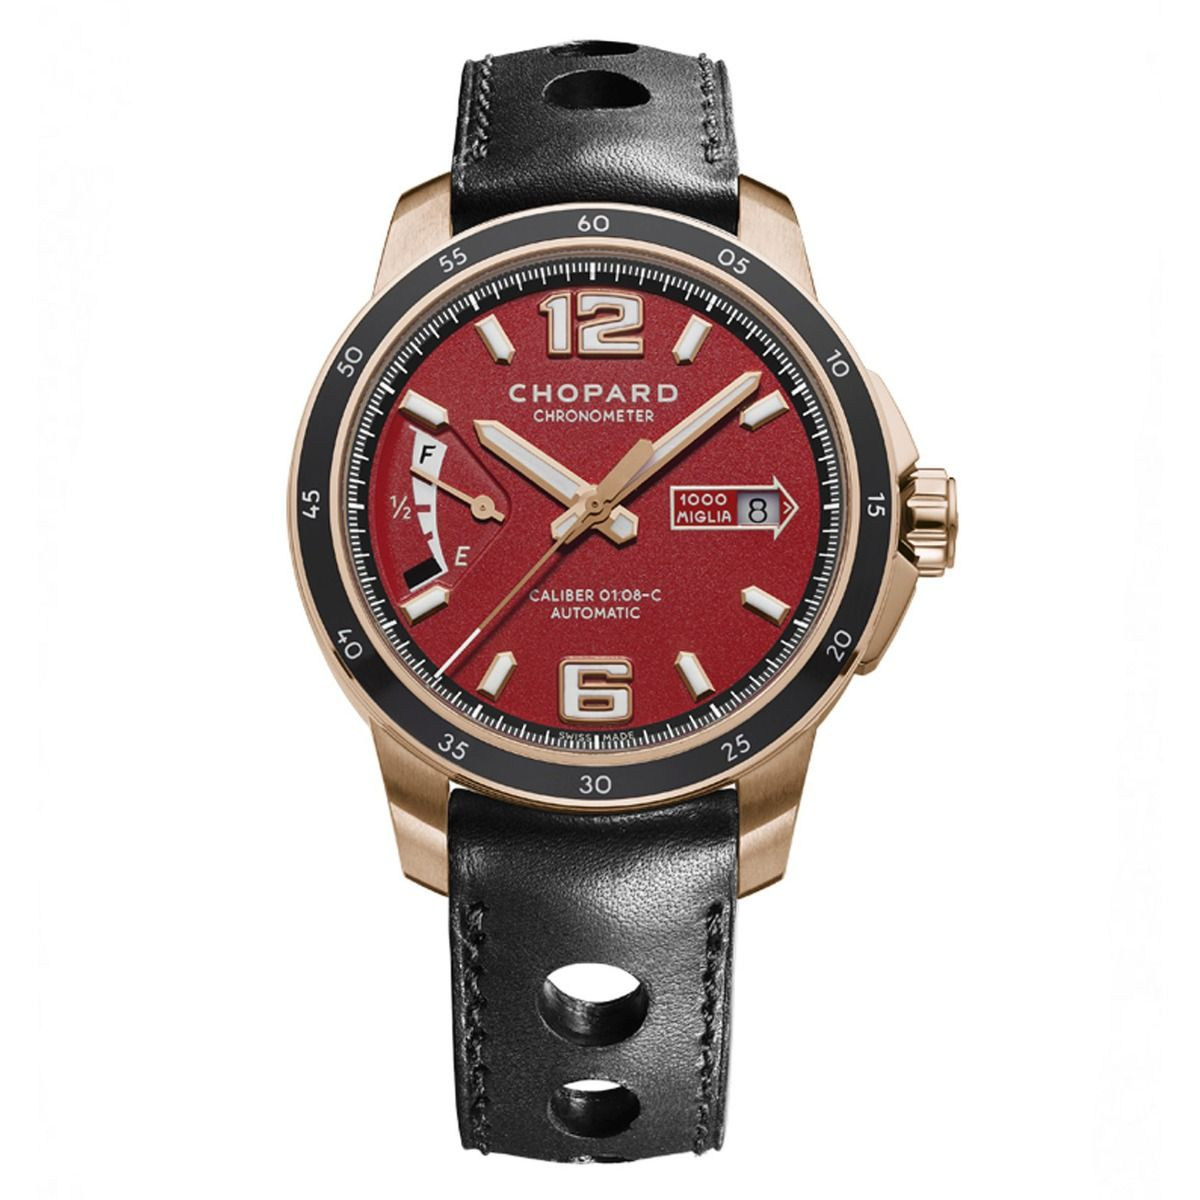 Chopard Mille Miglia Men's Watch 2015 Race Edition Rose Gold - Watches & Crystals